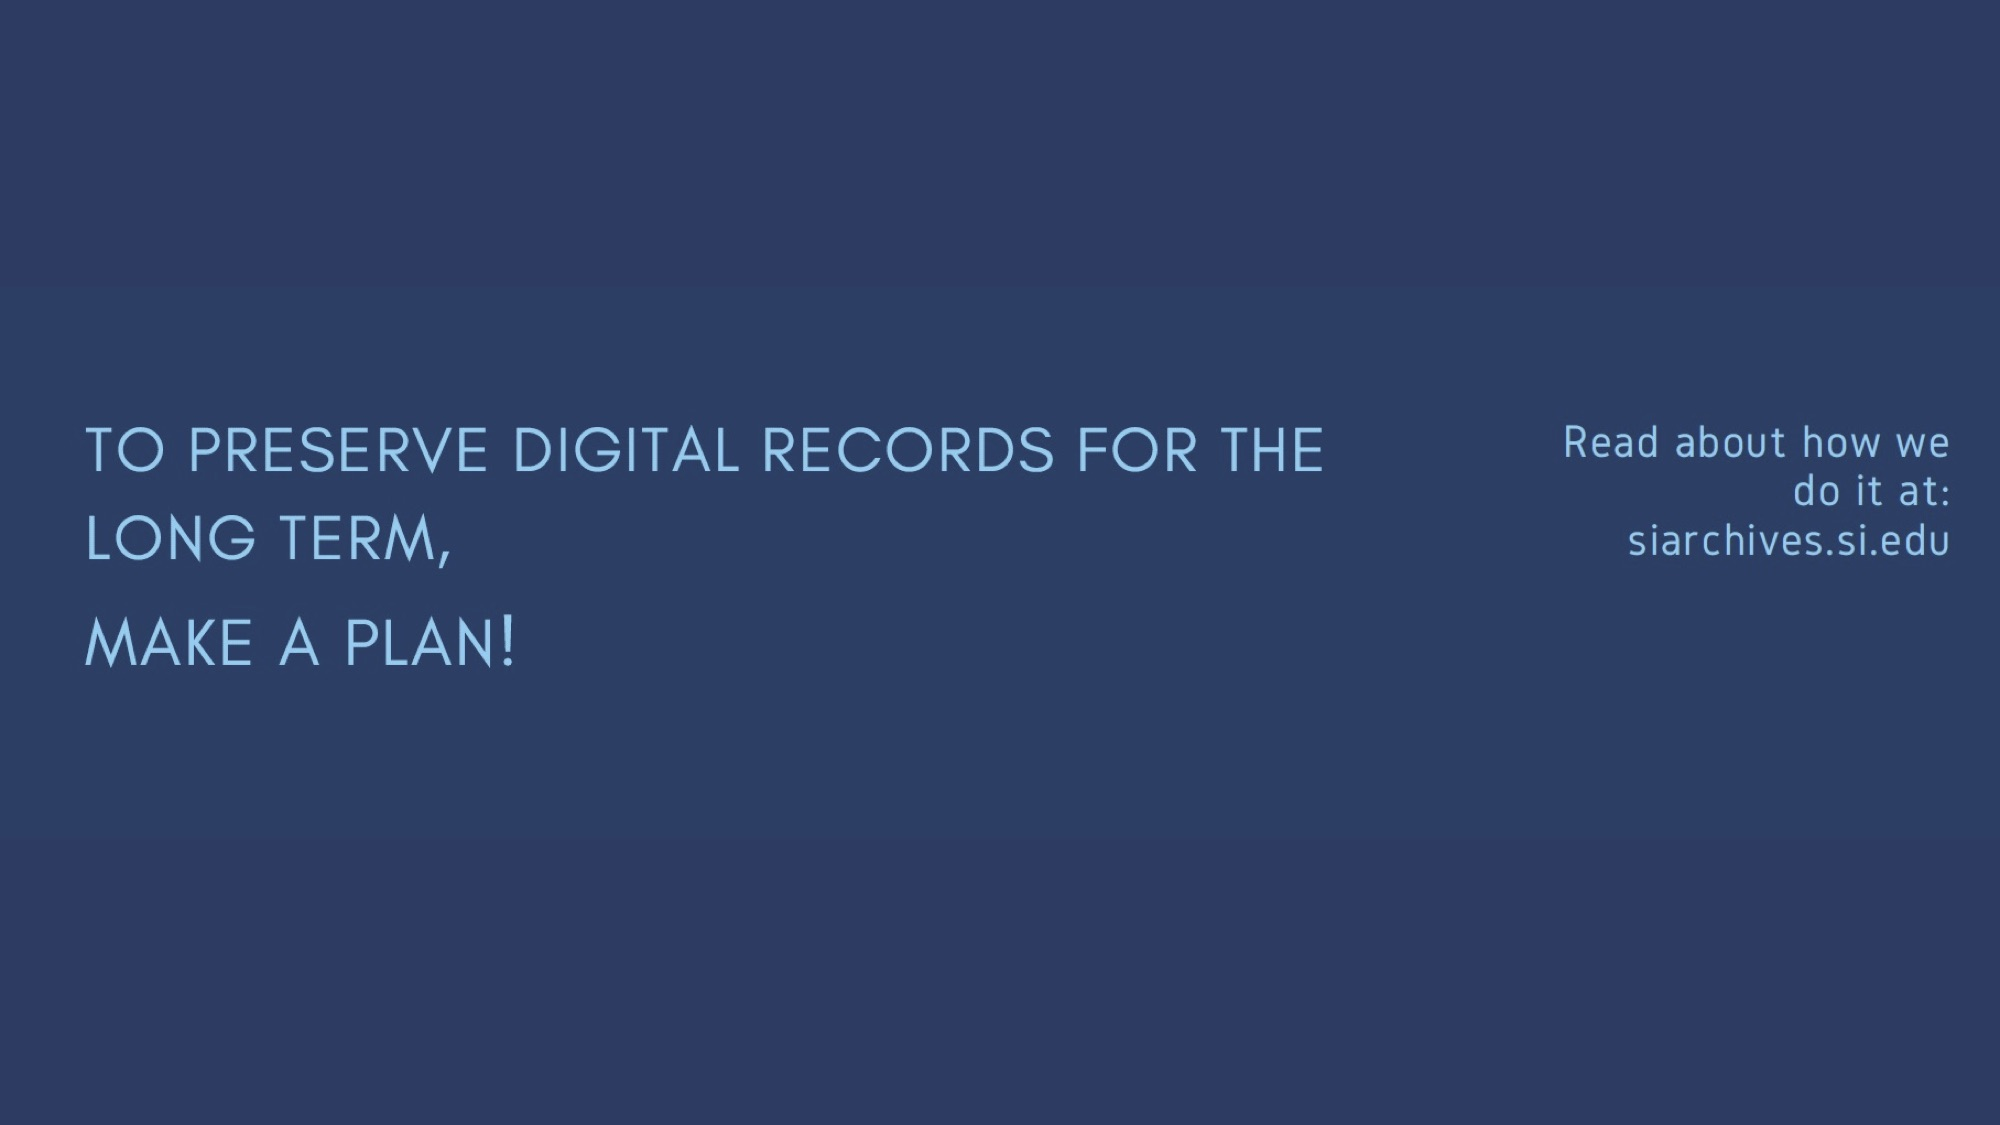 The fifth and final slide reads: left To preserve digital records for the long term, make a plan! Ri